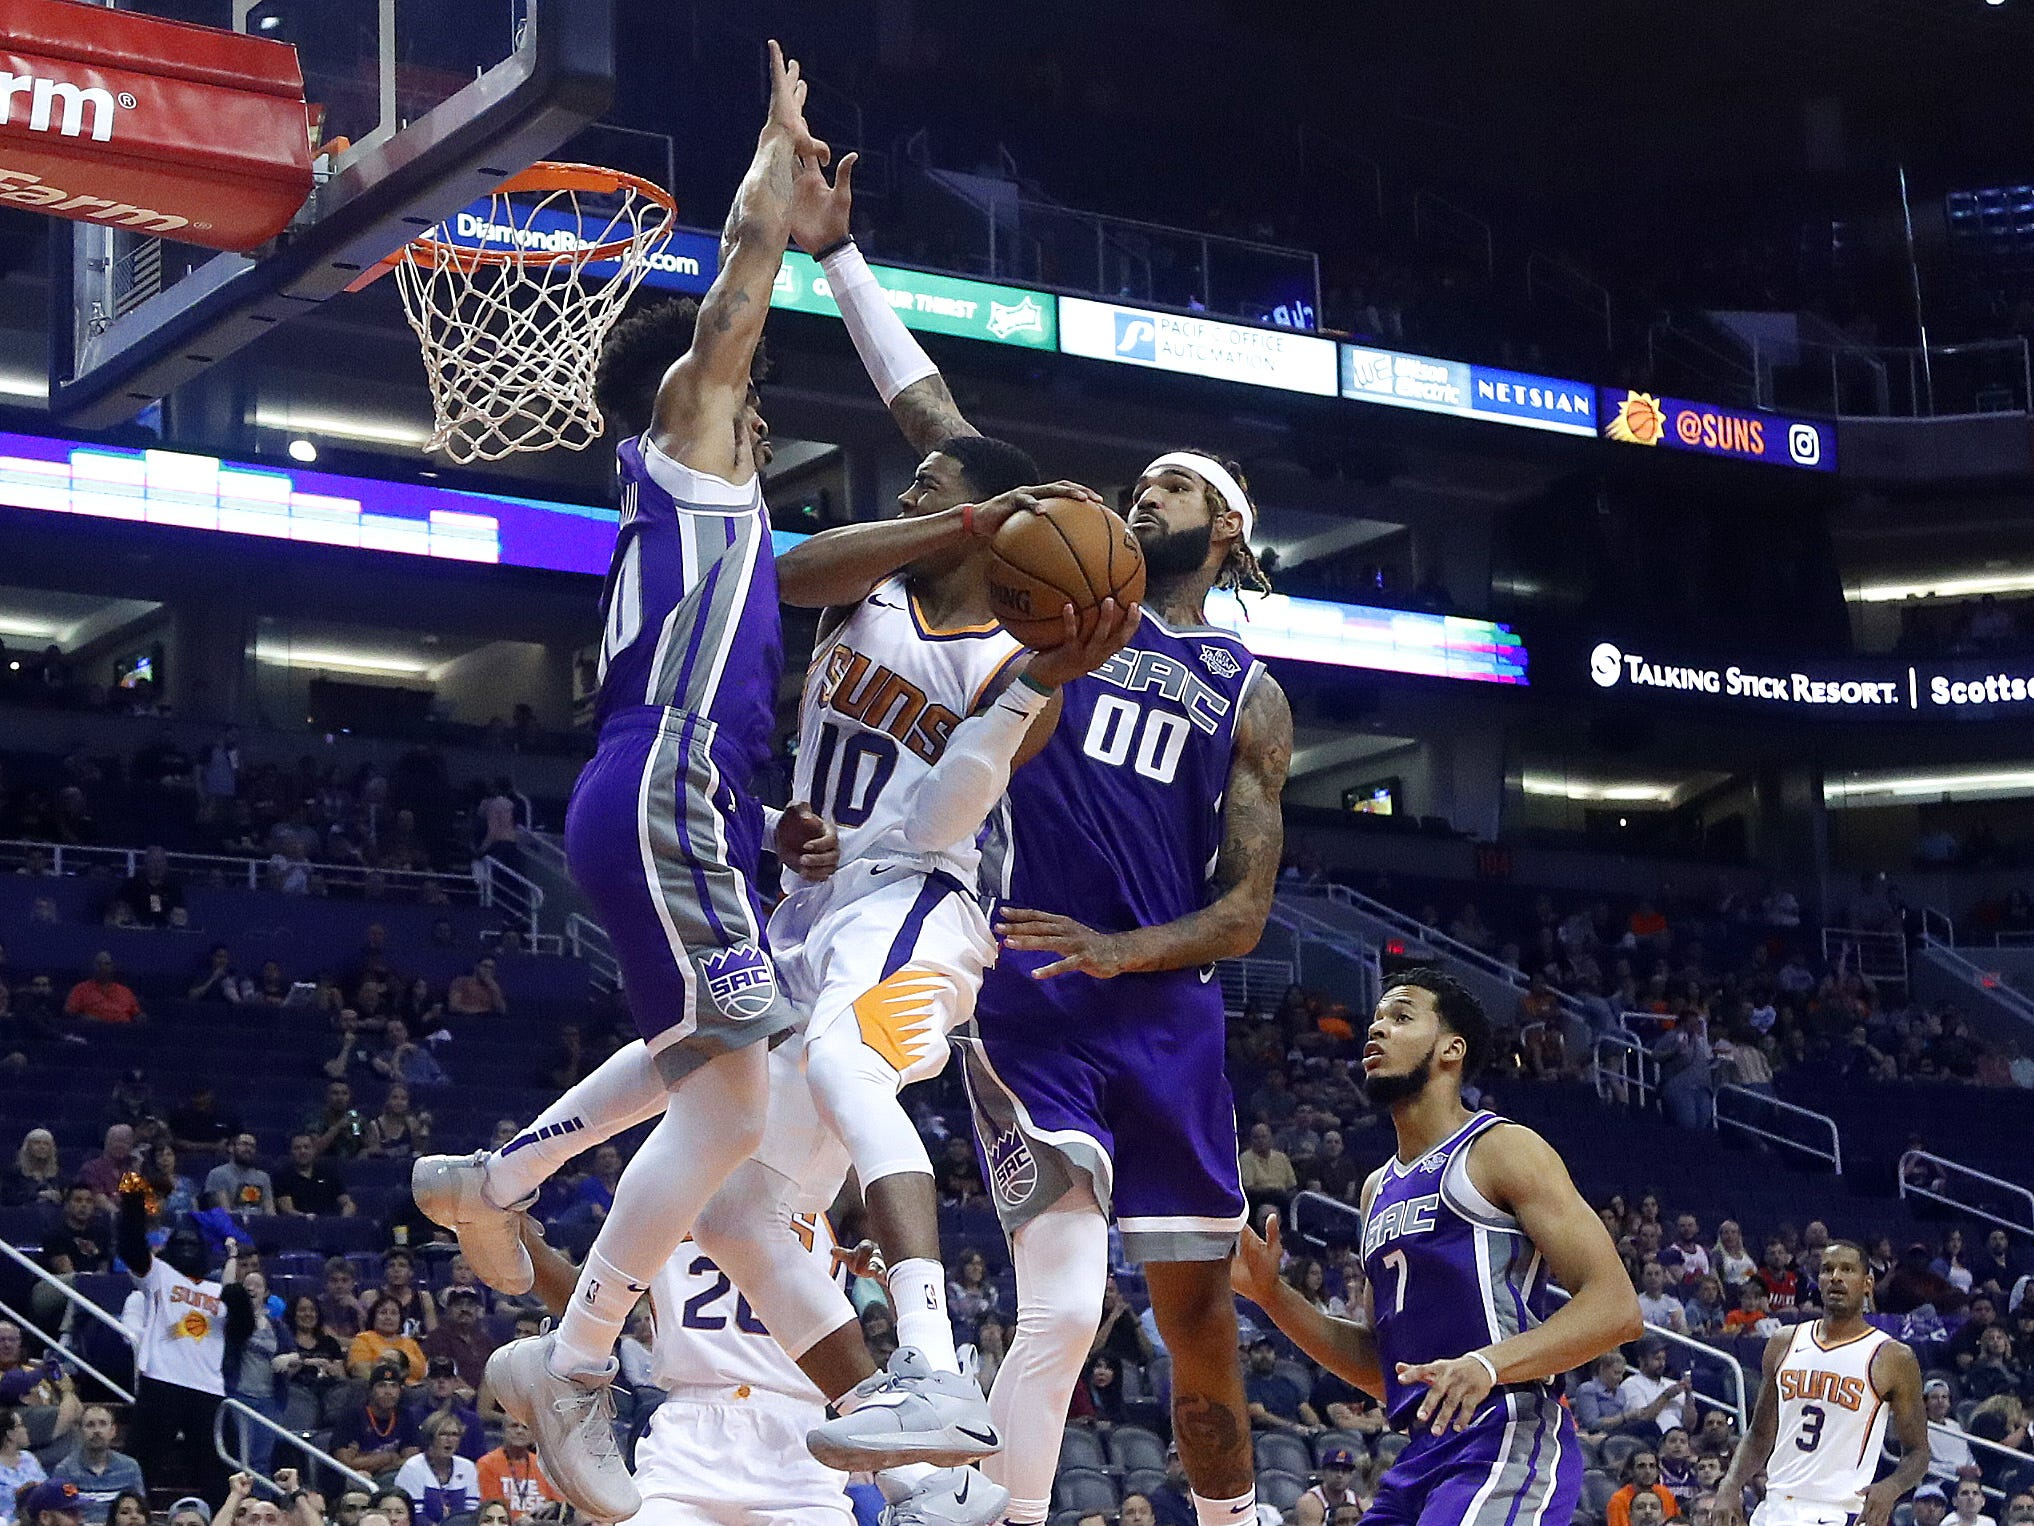 Suns' Shaquille Harrison (10) tries to make a layup past Kings' Willie Cauley-Stein (00) during the first half at Talking Stick Resort Arena in Phoenix, Ariz. on October 1, 2018.